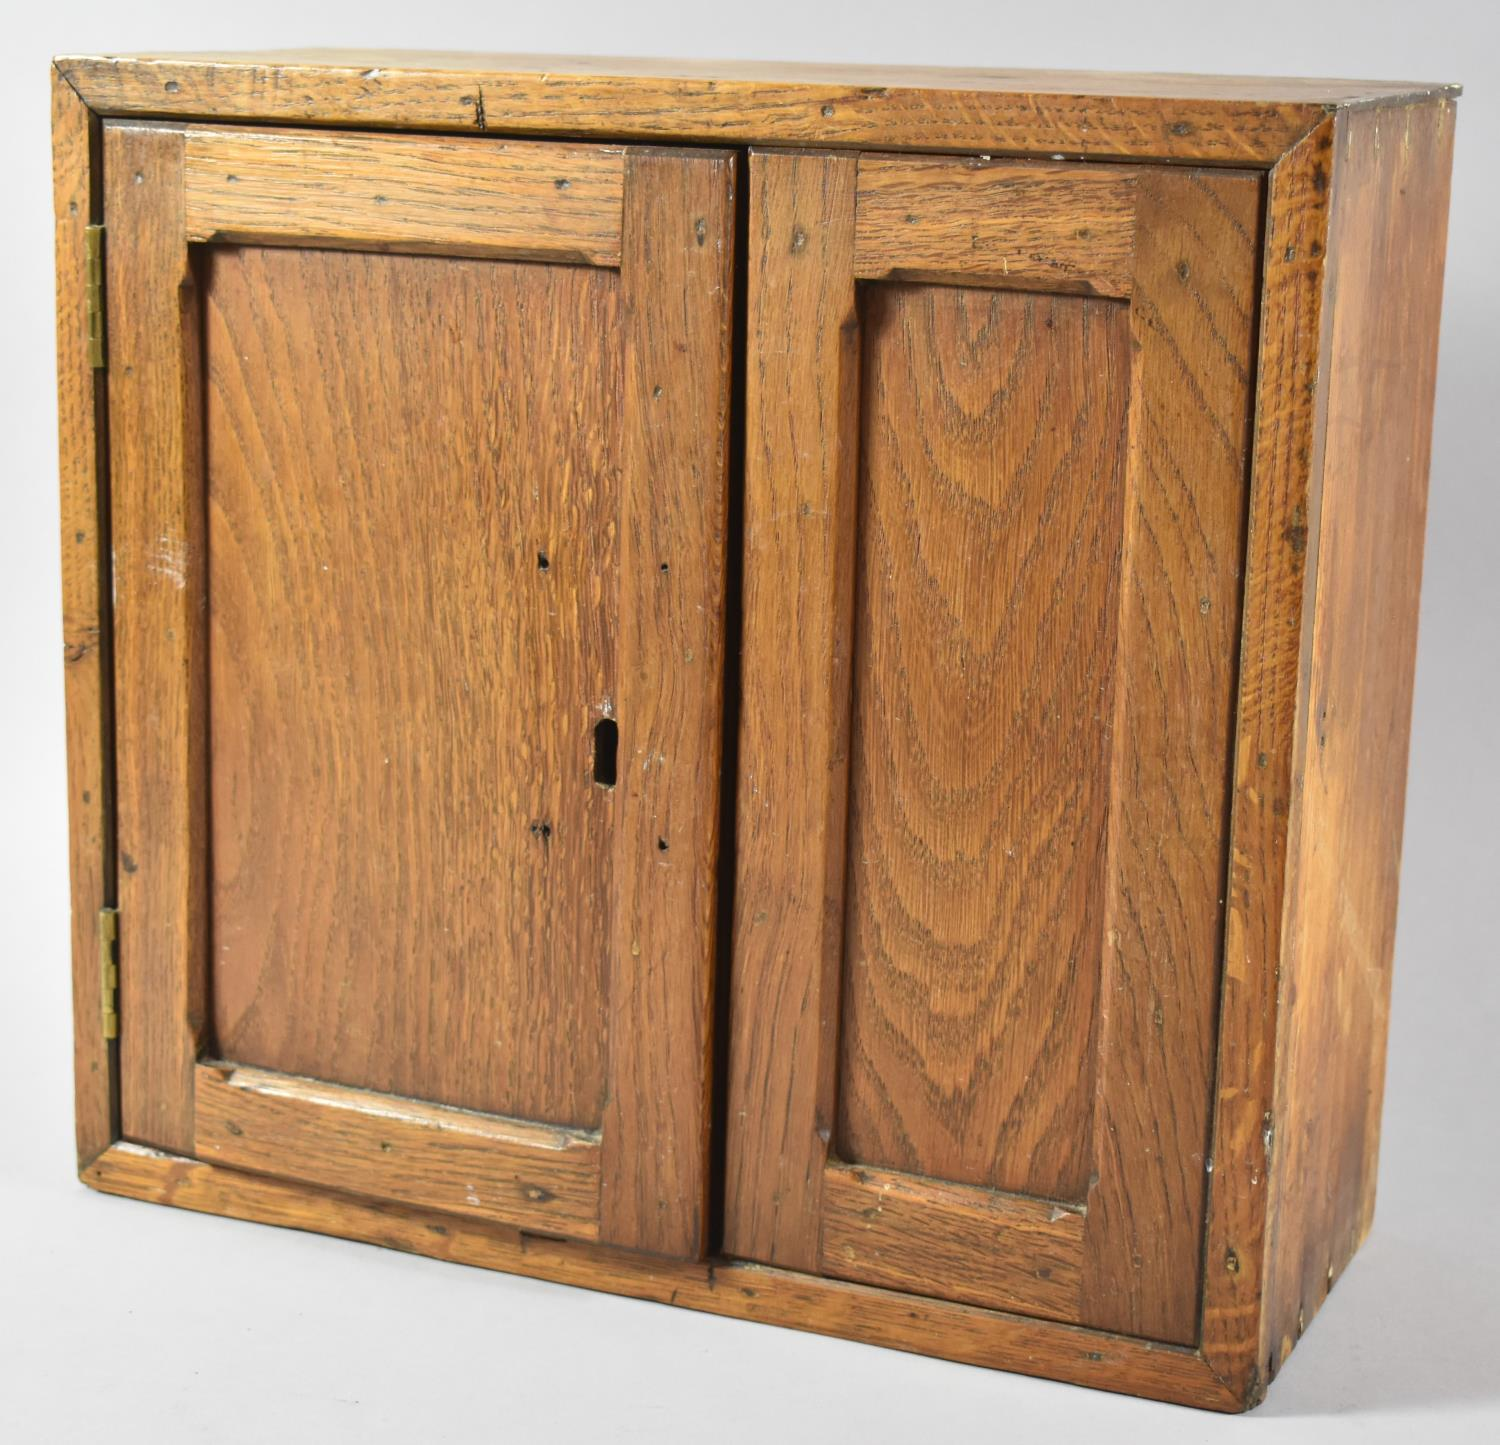 A Wall Hanging Oak Cabinet with Panelled Door, 35.5cm Wide